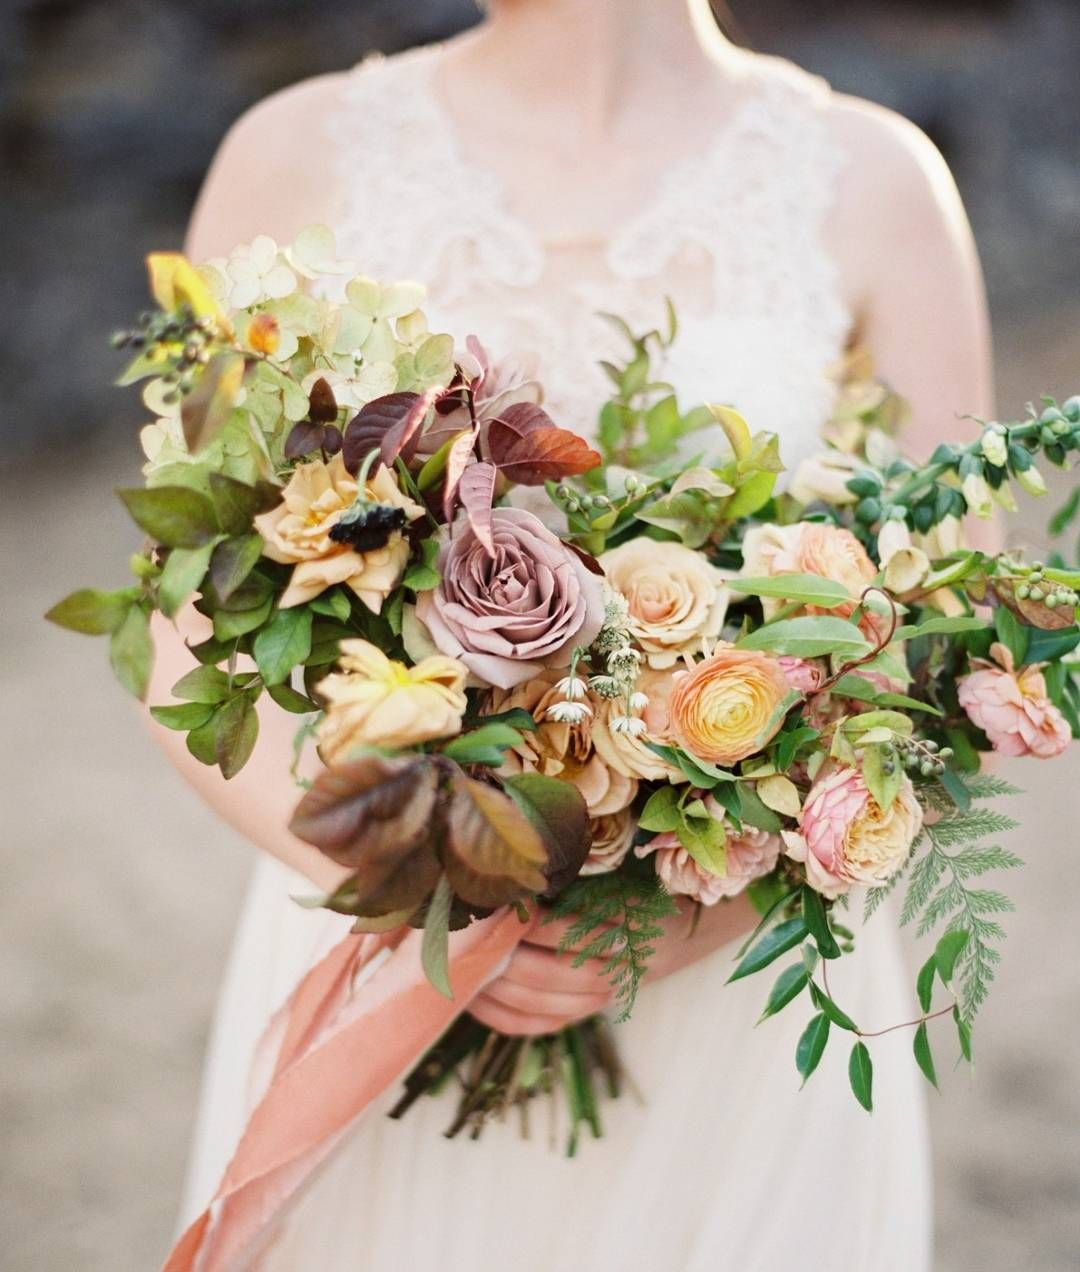 Ever Wondered Why A Bridal Bouquet Costs So Much More Than